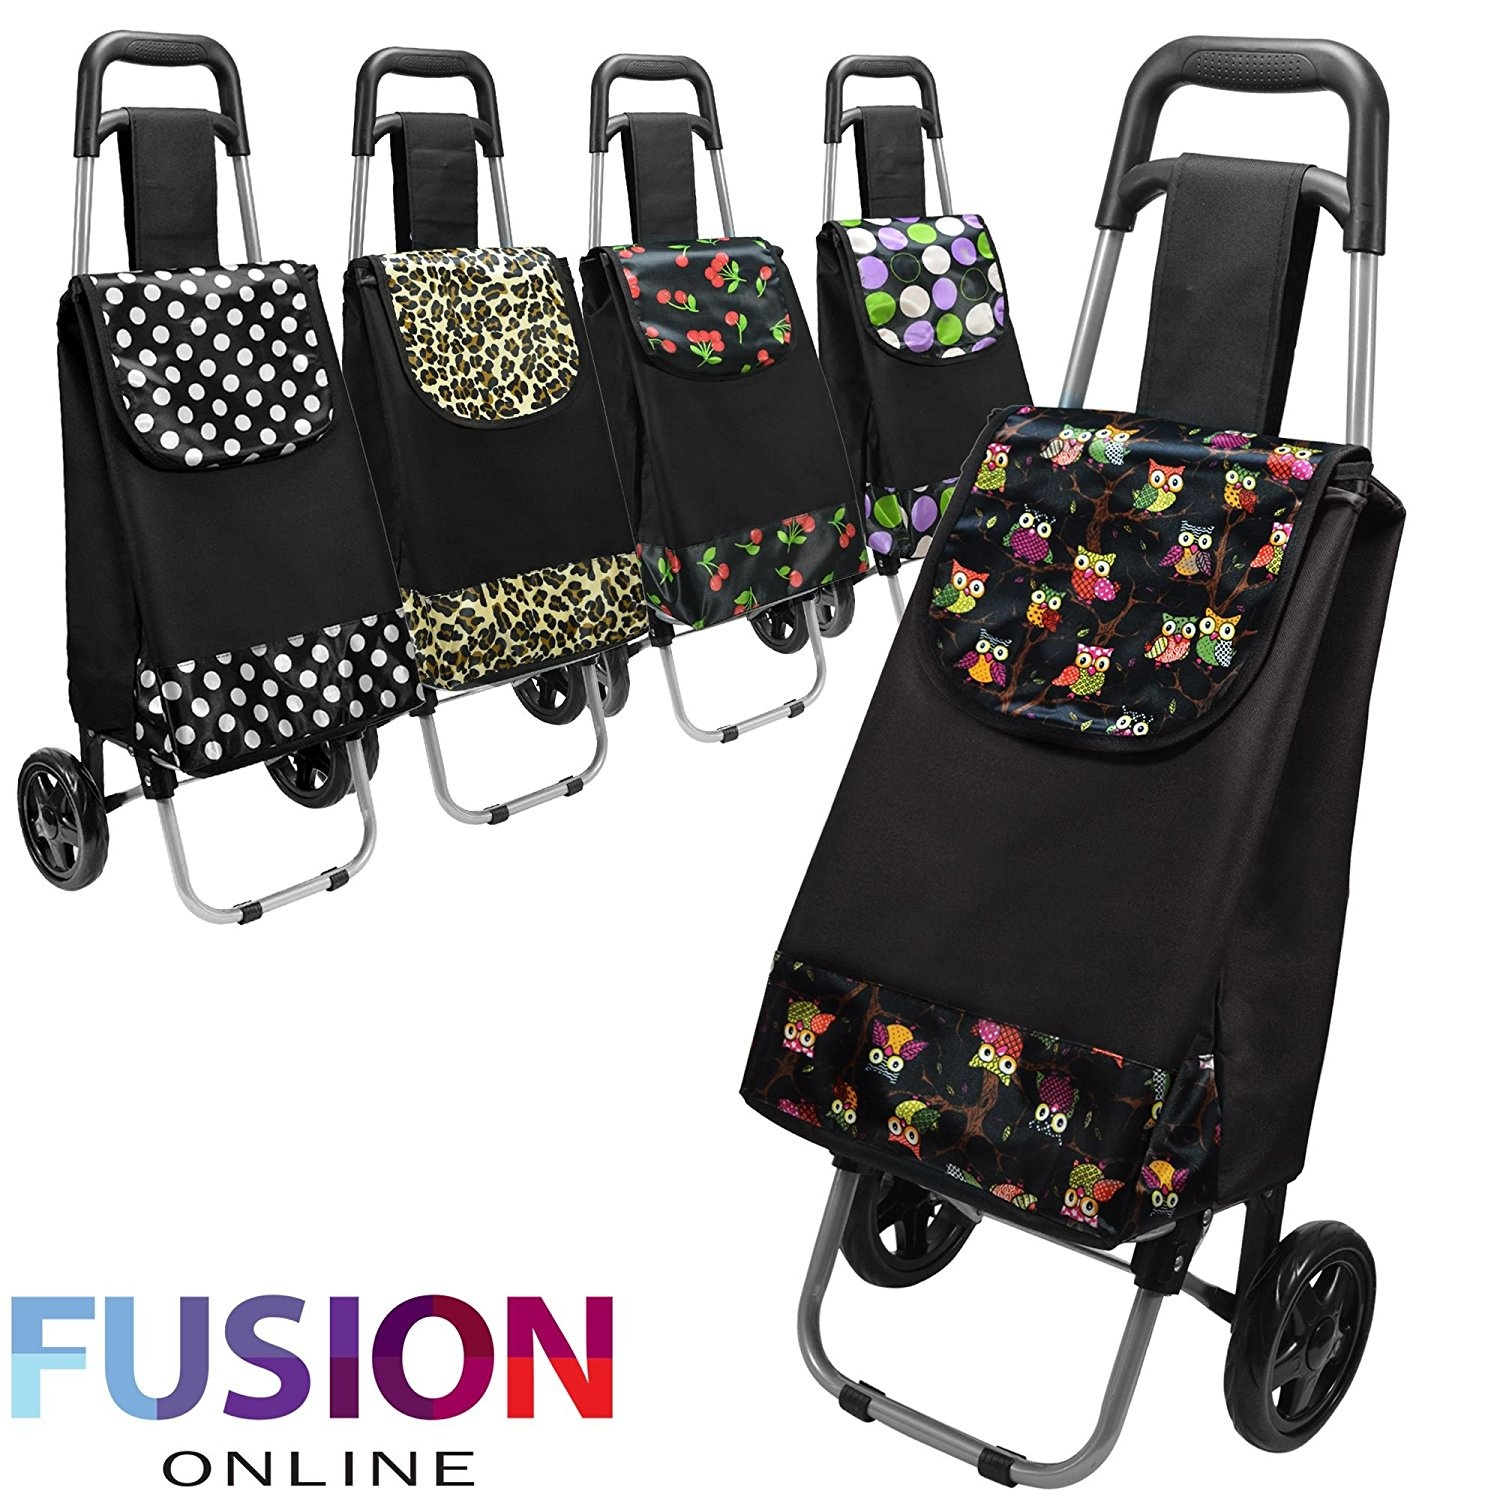 Shopping Trolley Bag On Wheels Australia Large Capacity Light Weight Wheeled Shopping Trolley Push Cart Bag With Wheels Pattern Design